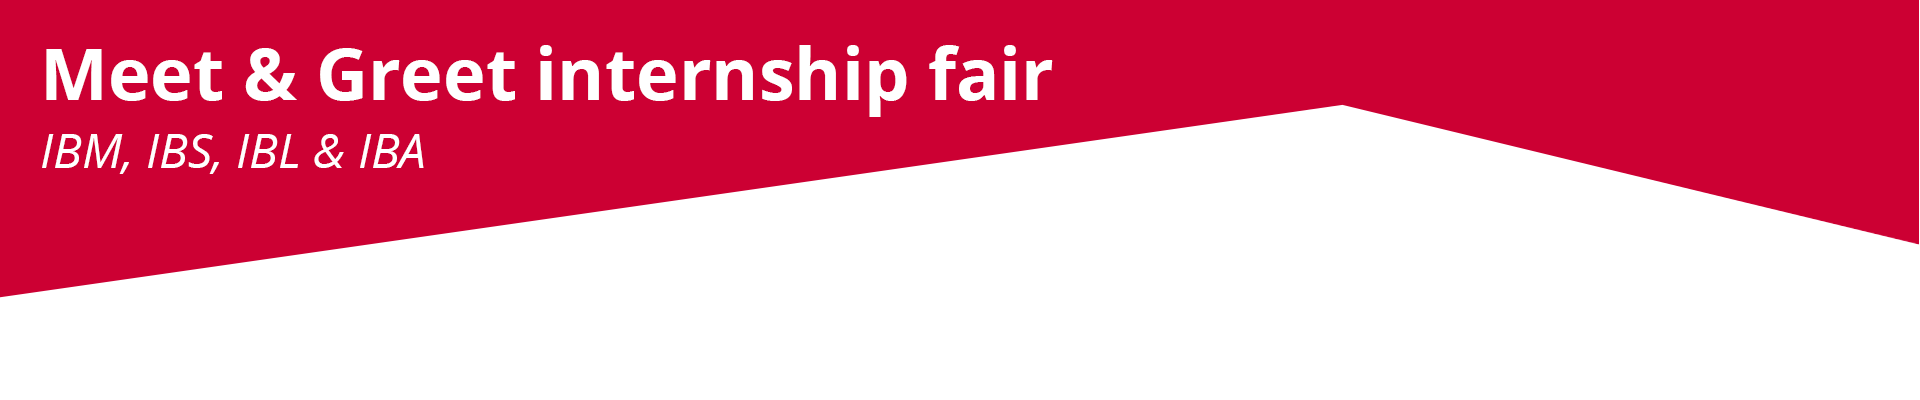 Meet & greet internship fair 2020 - jaar 2